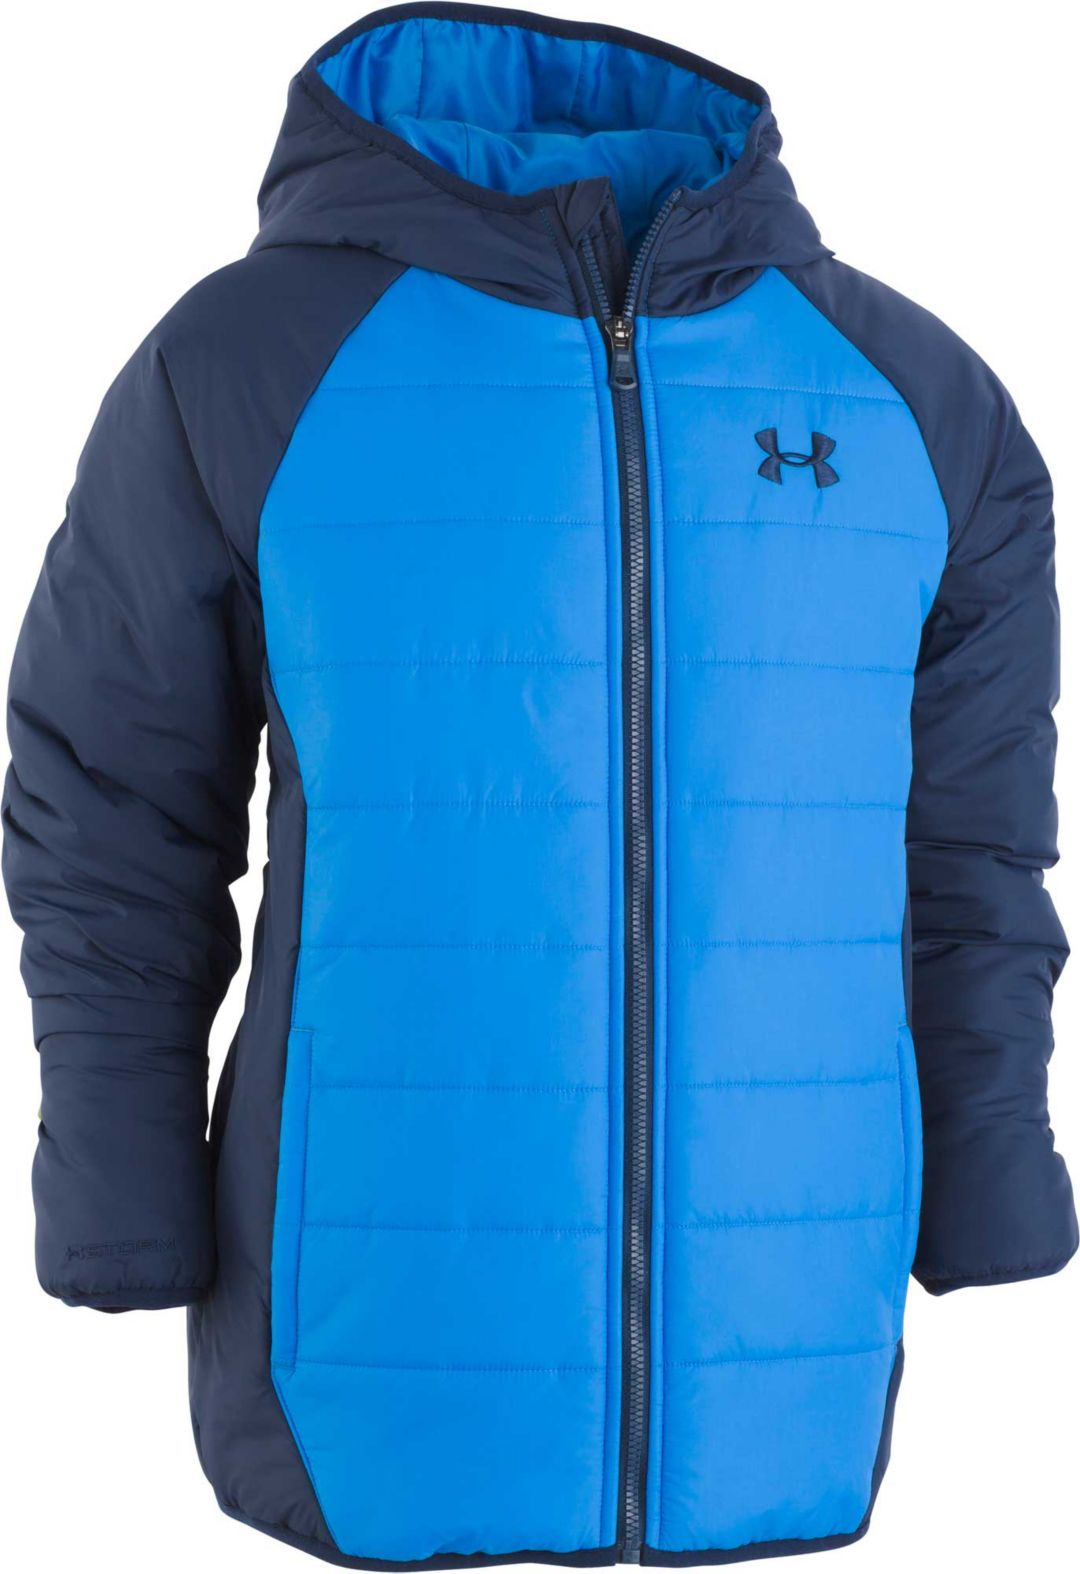 39823b4f2 Under Armour Boys' Tuckerman Puffer Jacket | DICK'S Sporting Goods